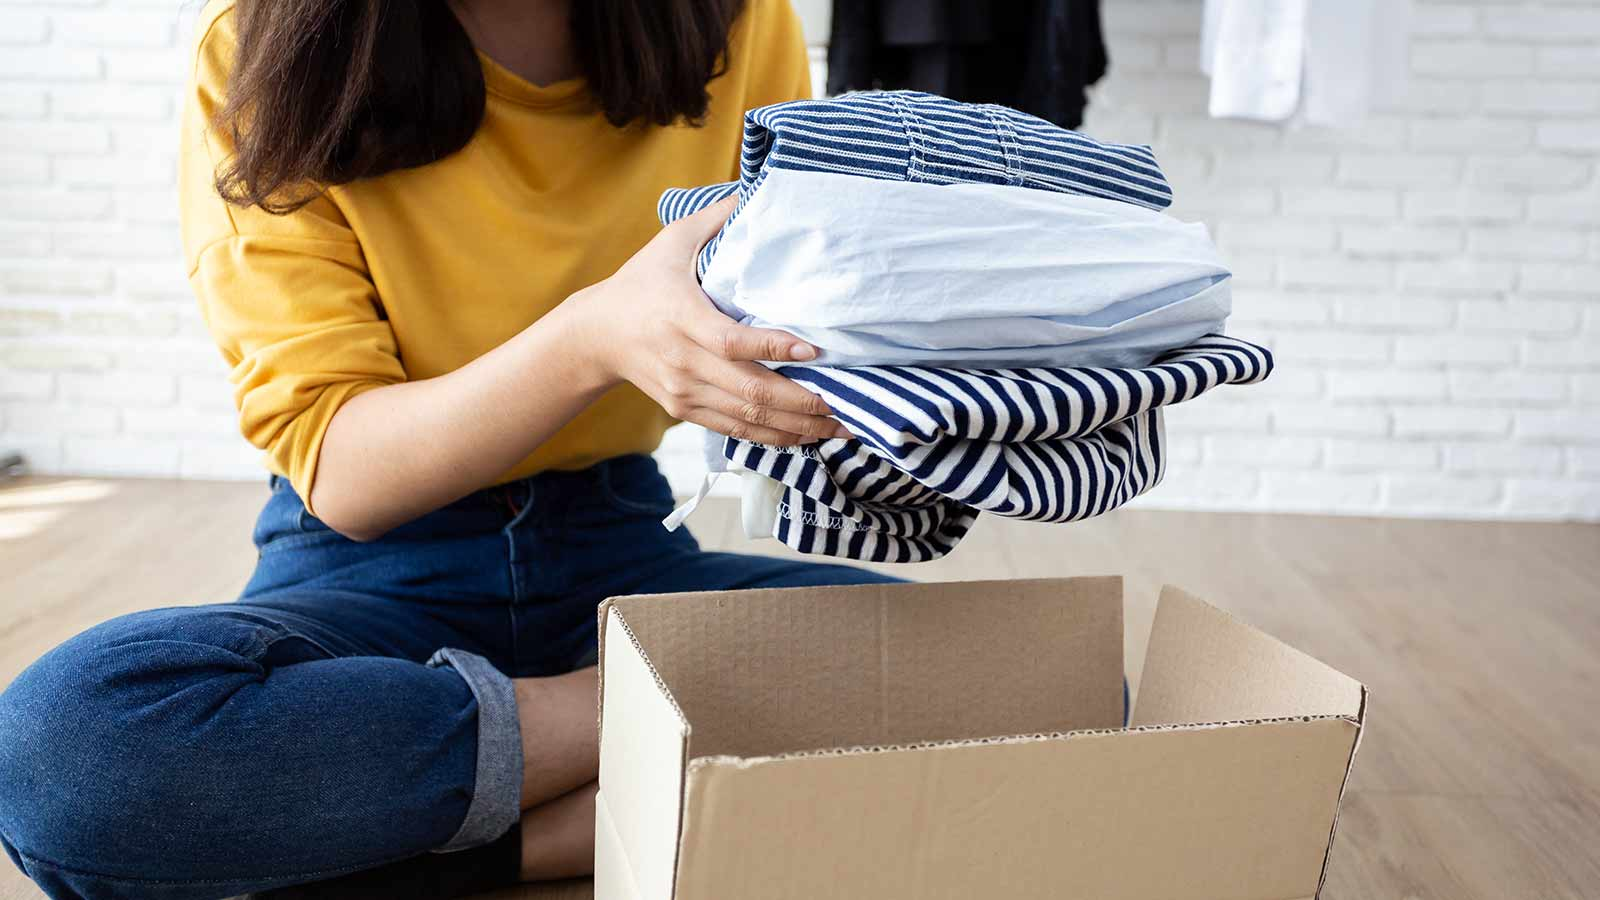 A woman sitting on the floor, putting a stack of clothes in a cardboard box.